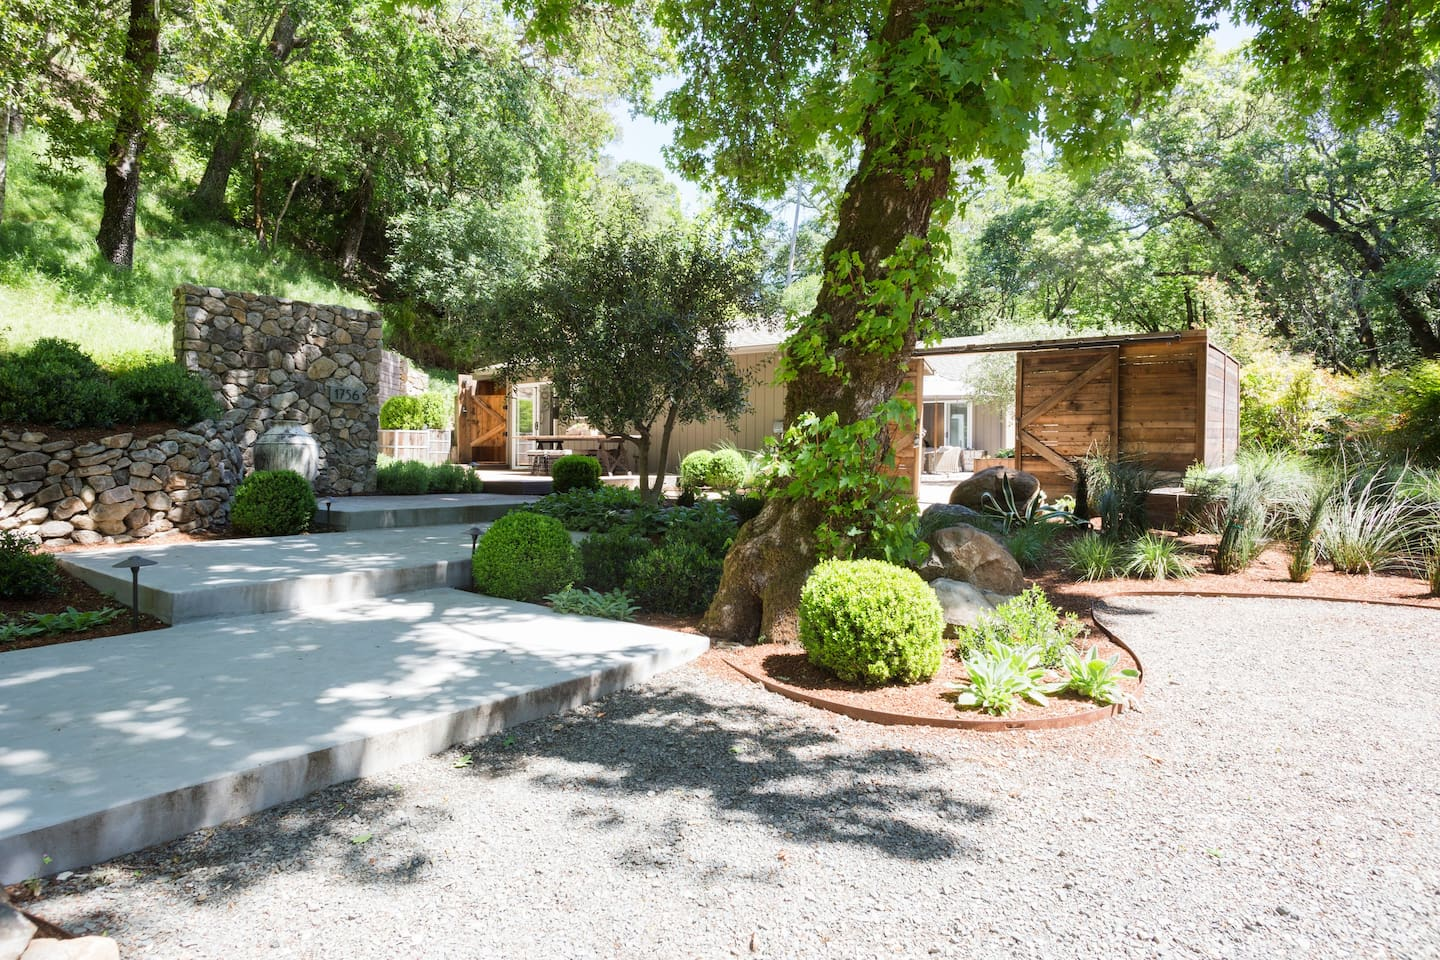 You will immediately feel at home when you drive up the country road to your vacation house.